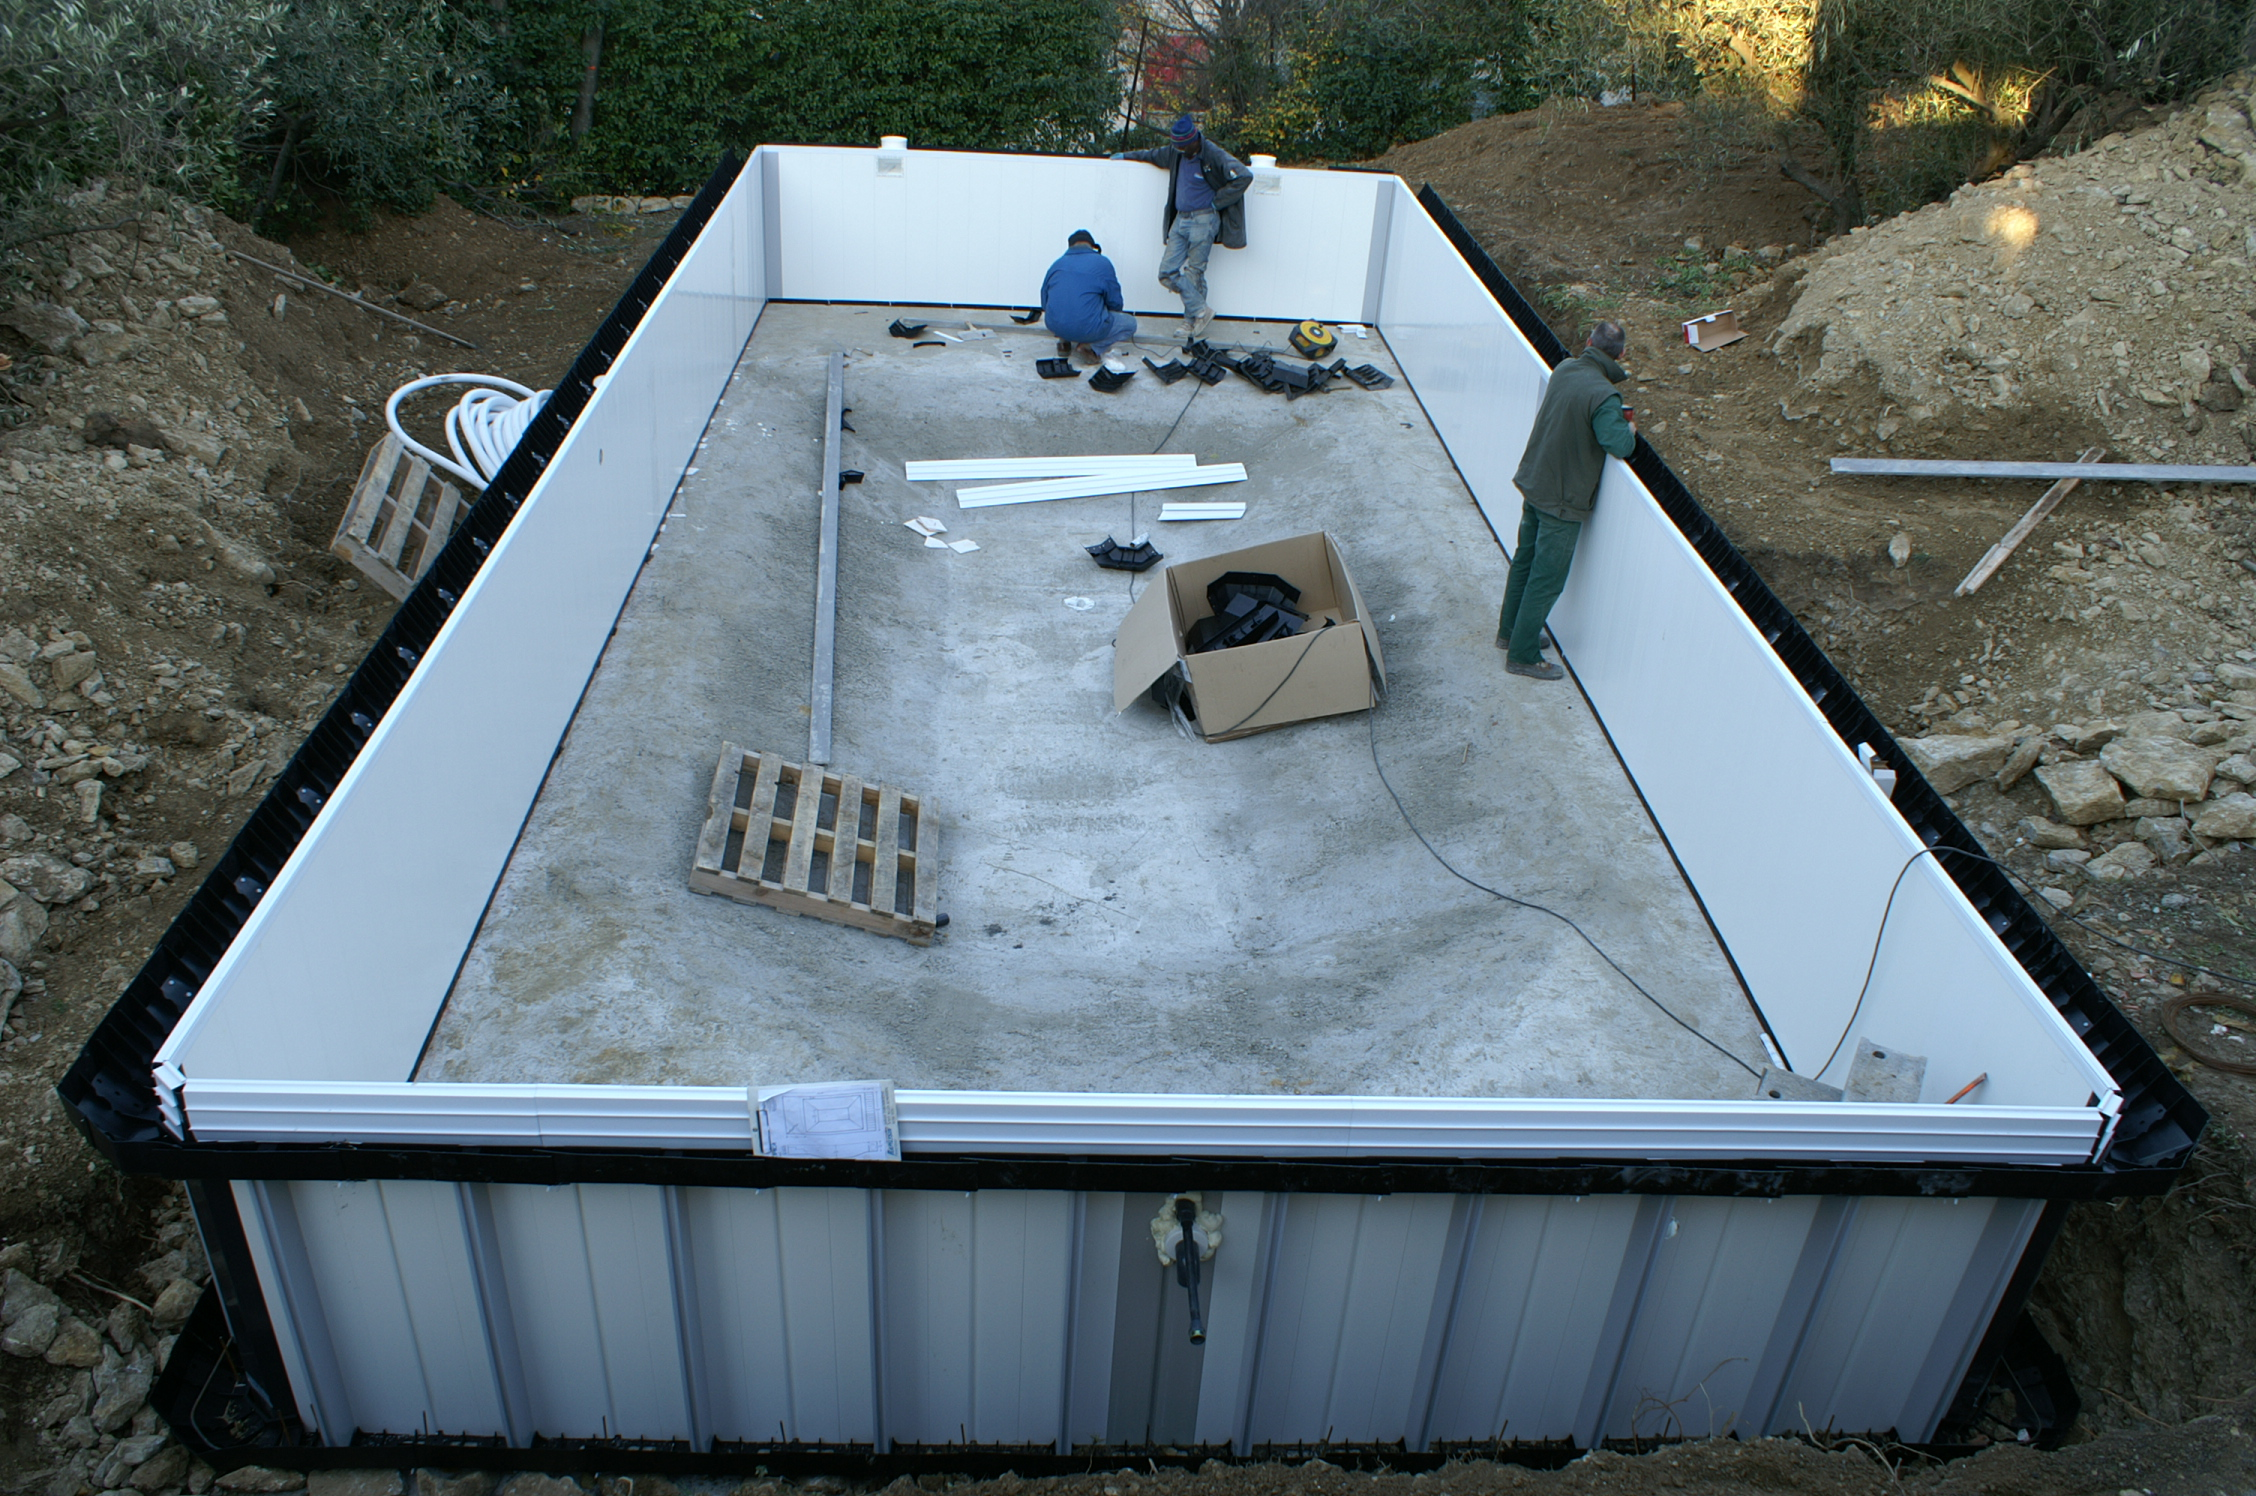 Construction piscines nimes gepad piscines et spa 30000 for Piscine en kit enterree